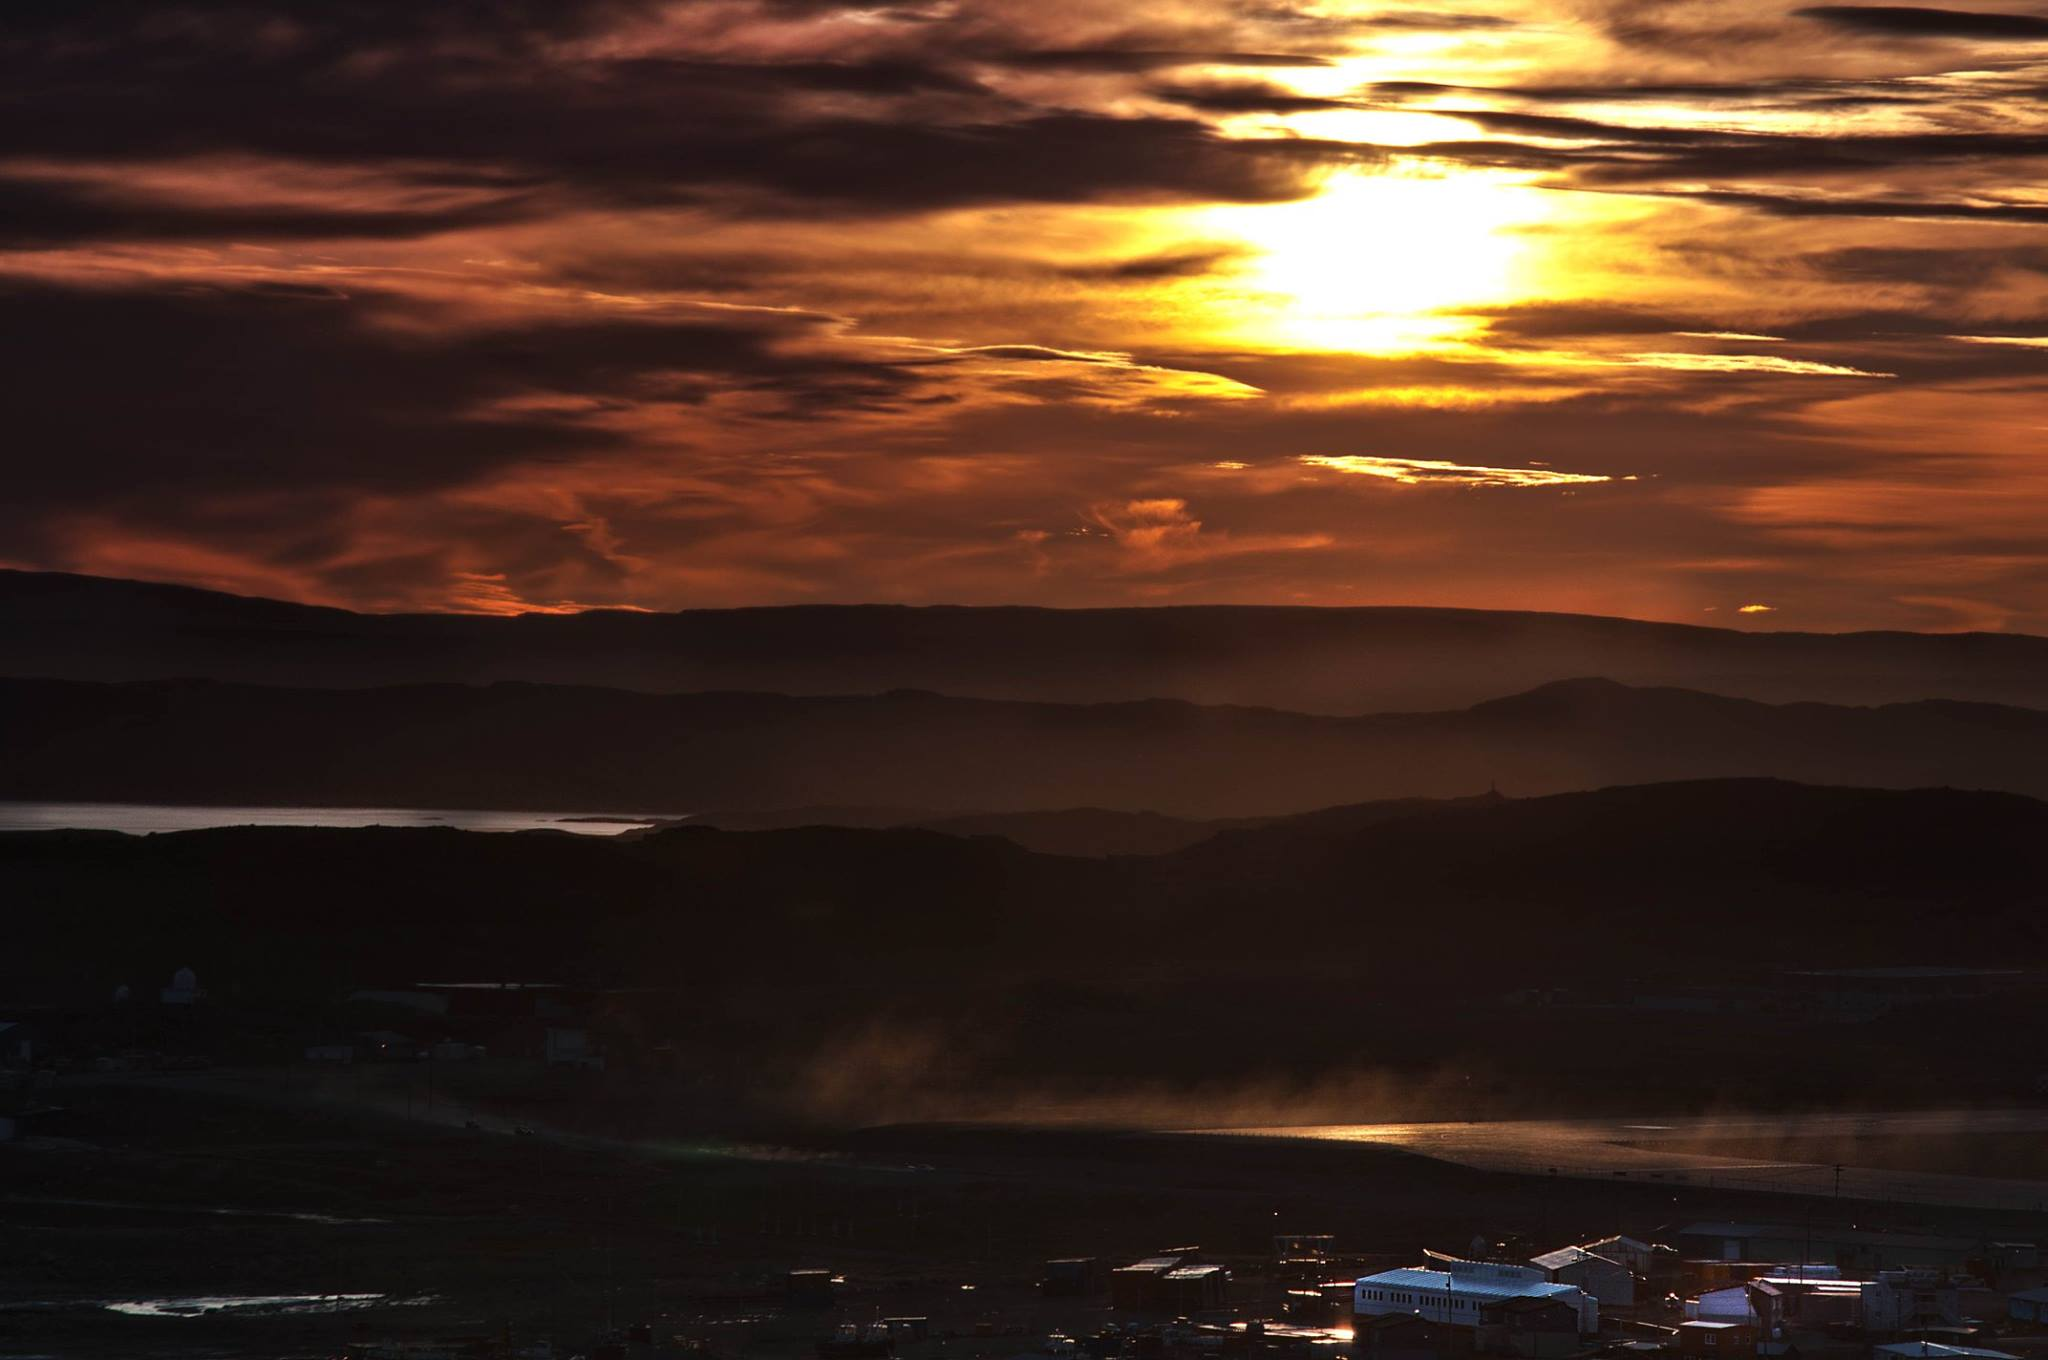 Arctic sunset view in Iqaluit